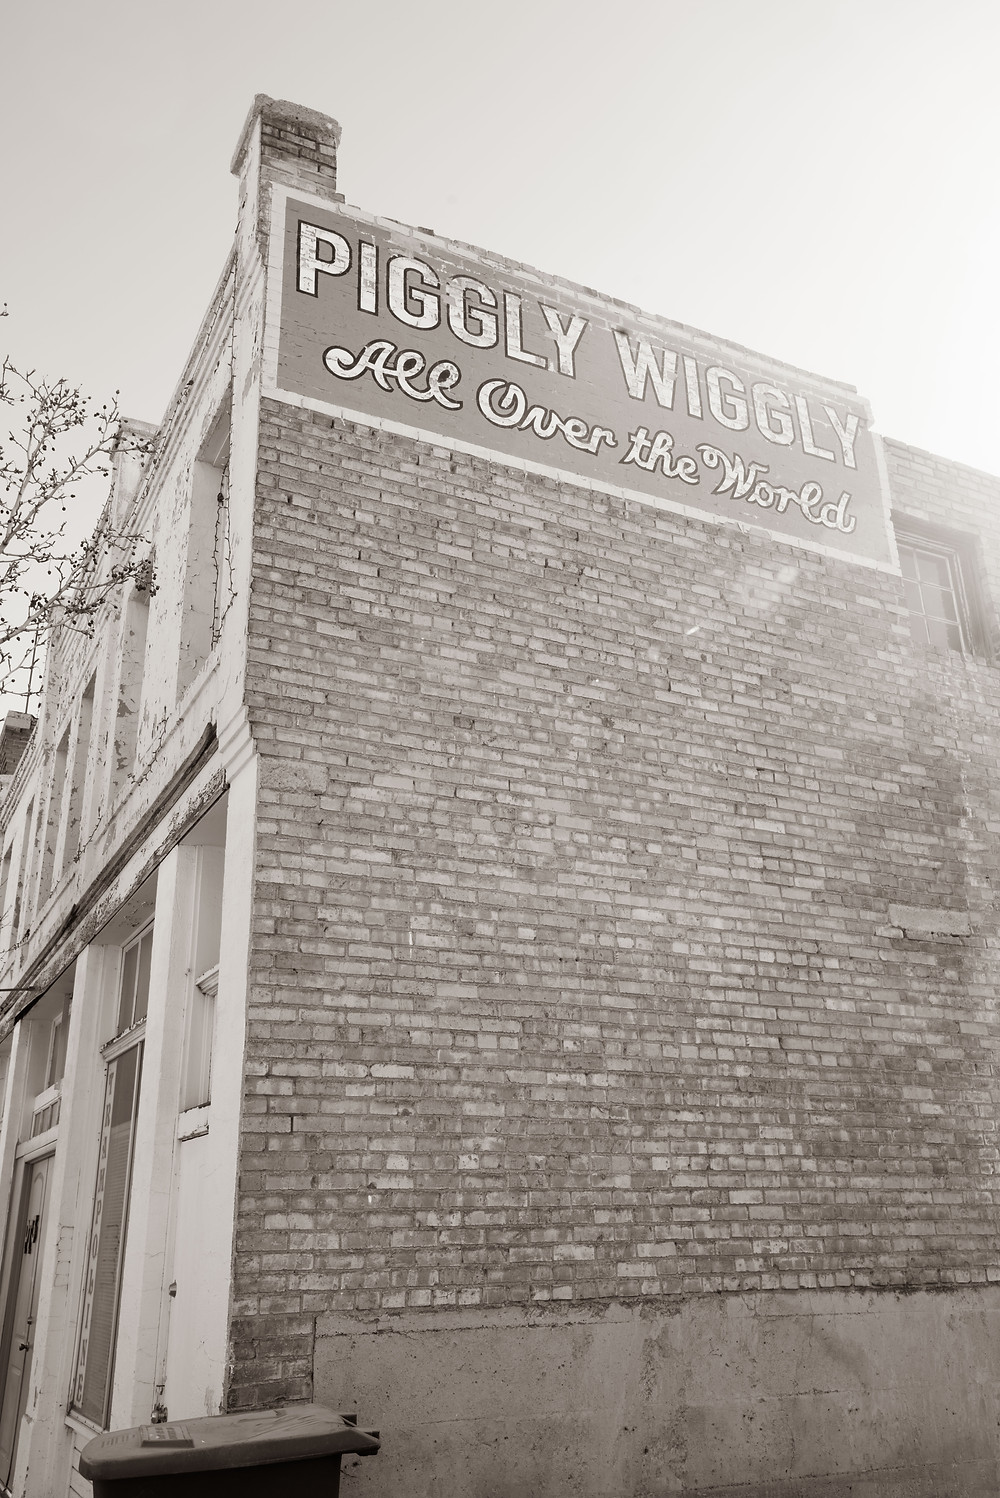 Closed Piggly Wiggly, Helper, UT